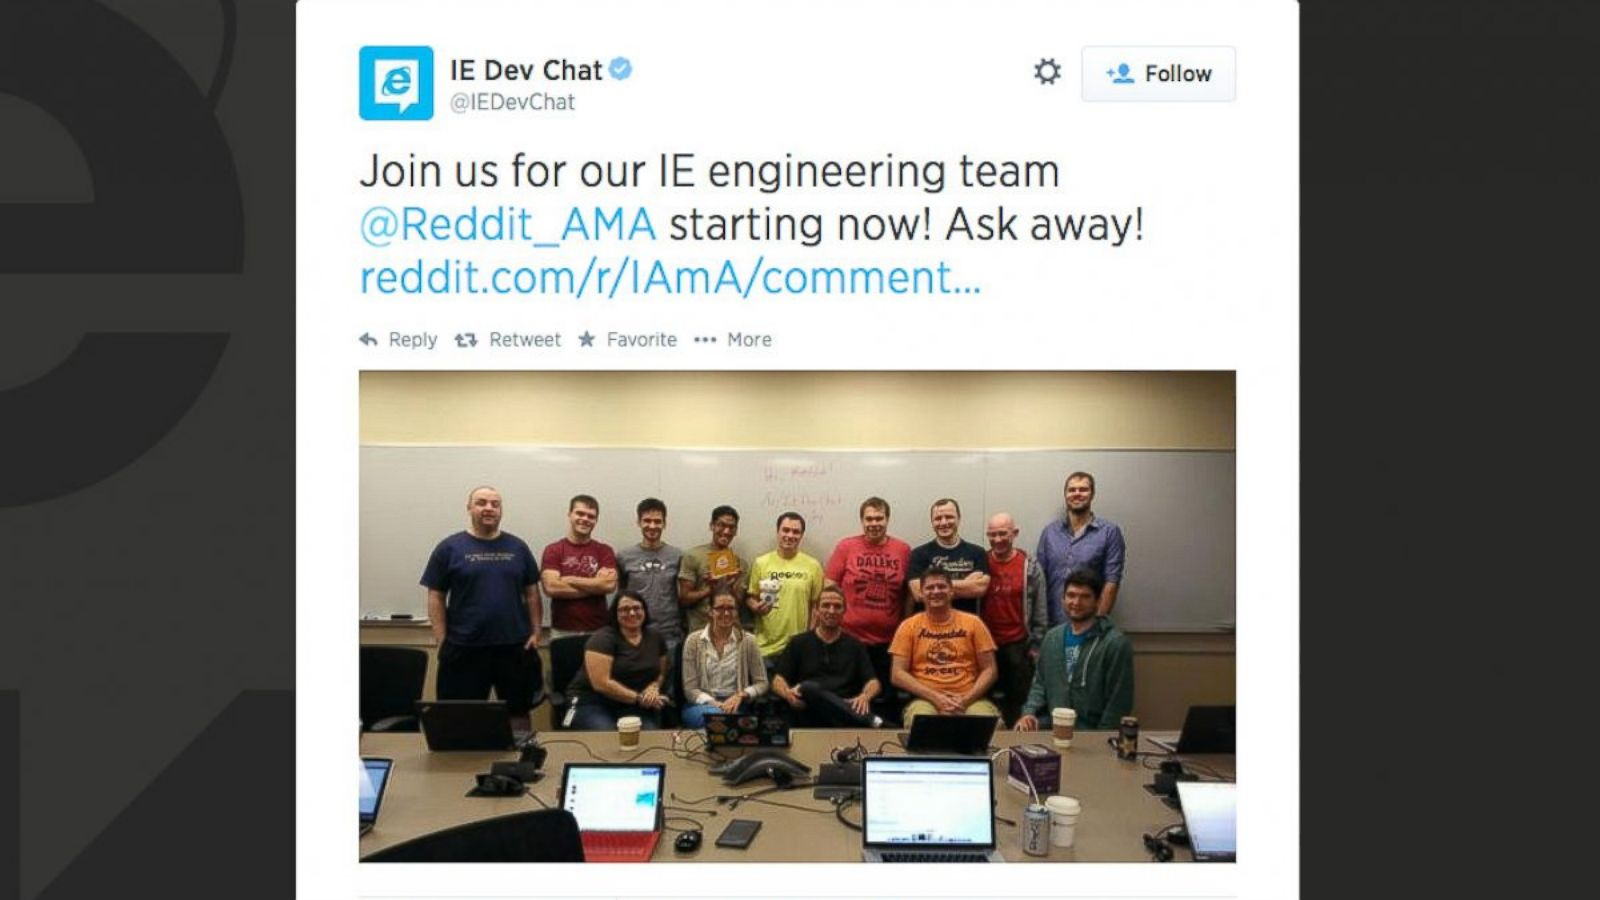 5 Things We Learned From the Team Behind Microsoft Internet